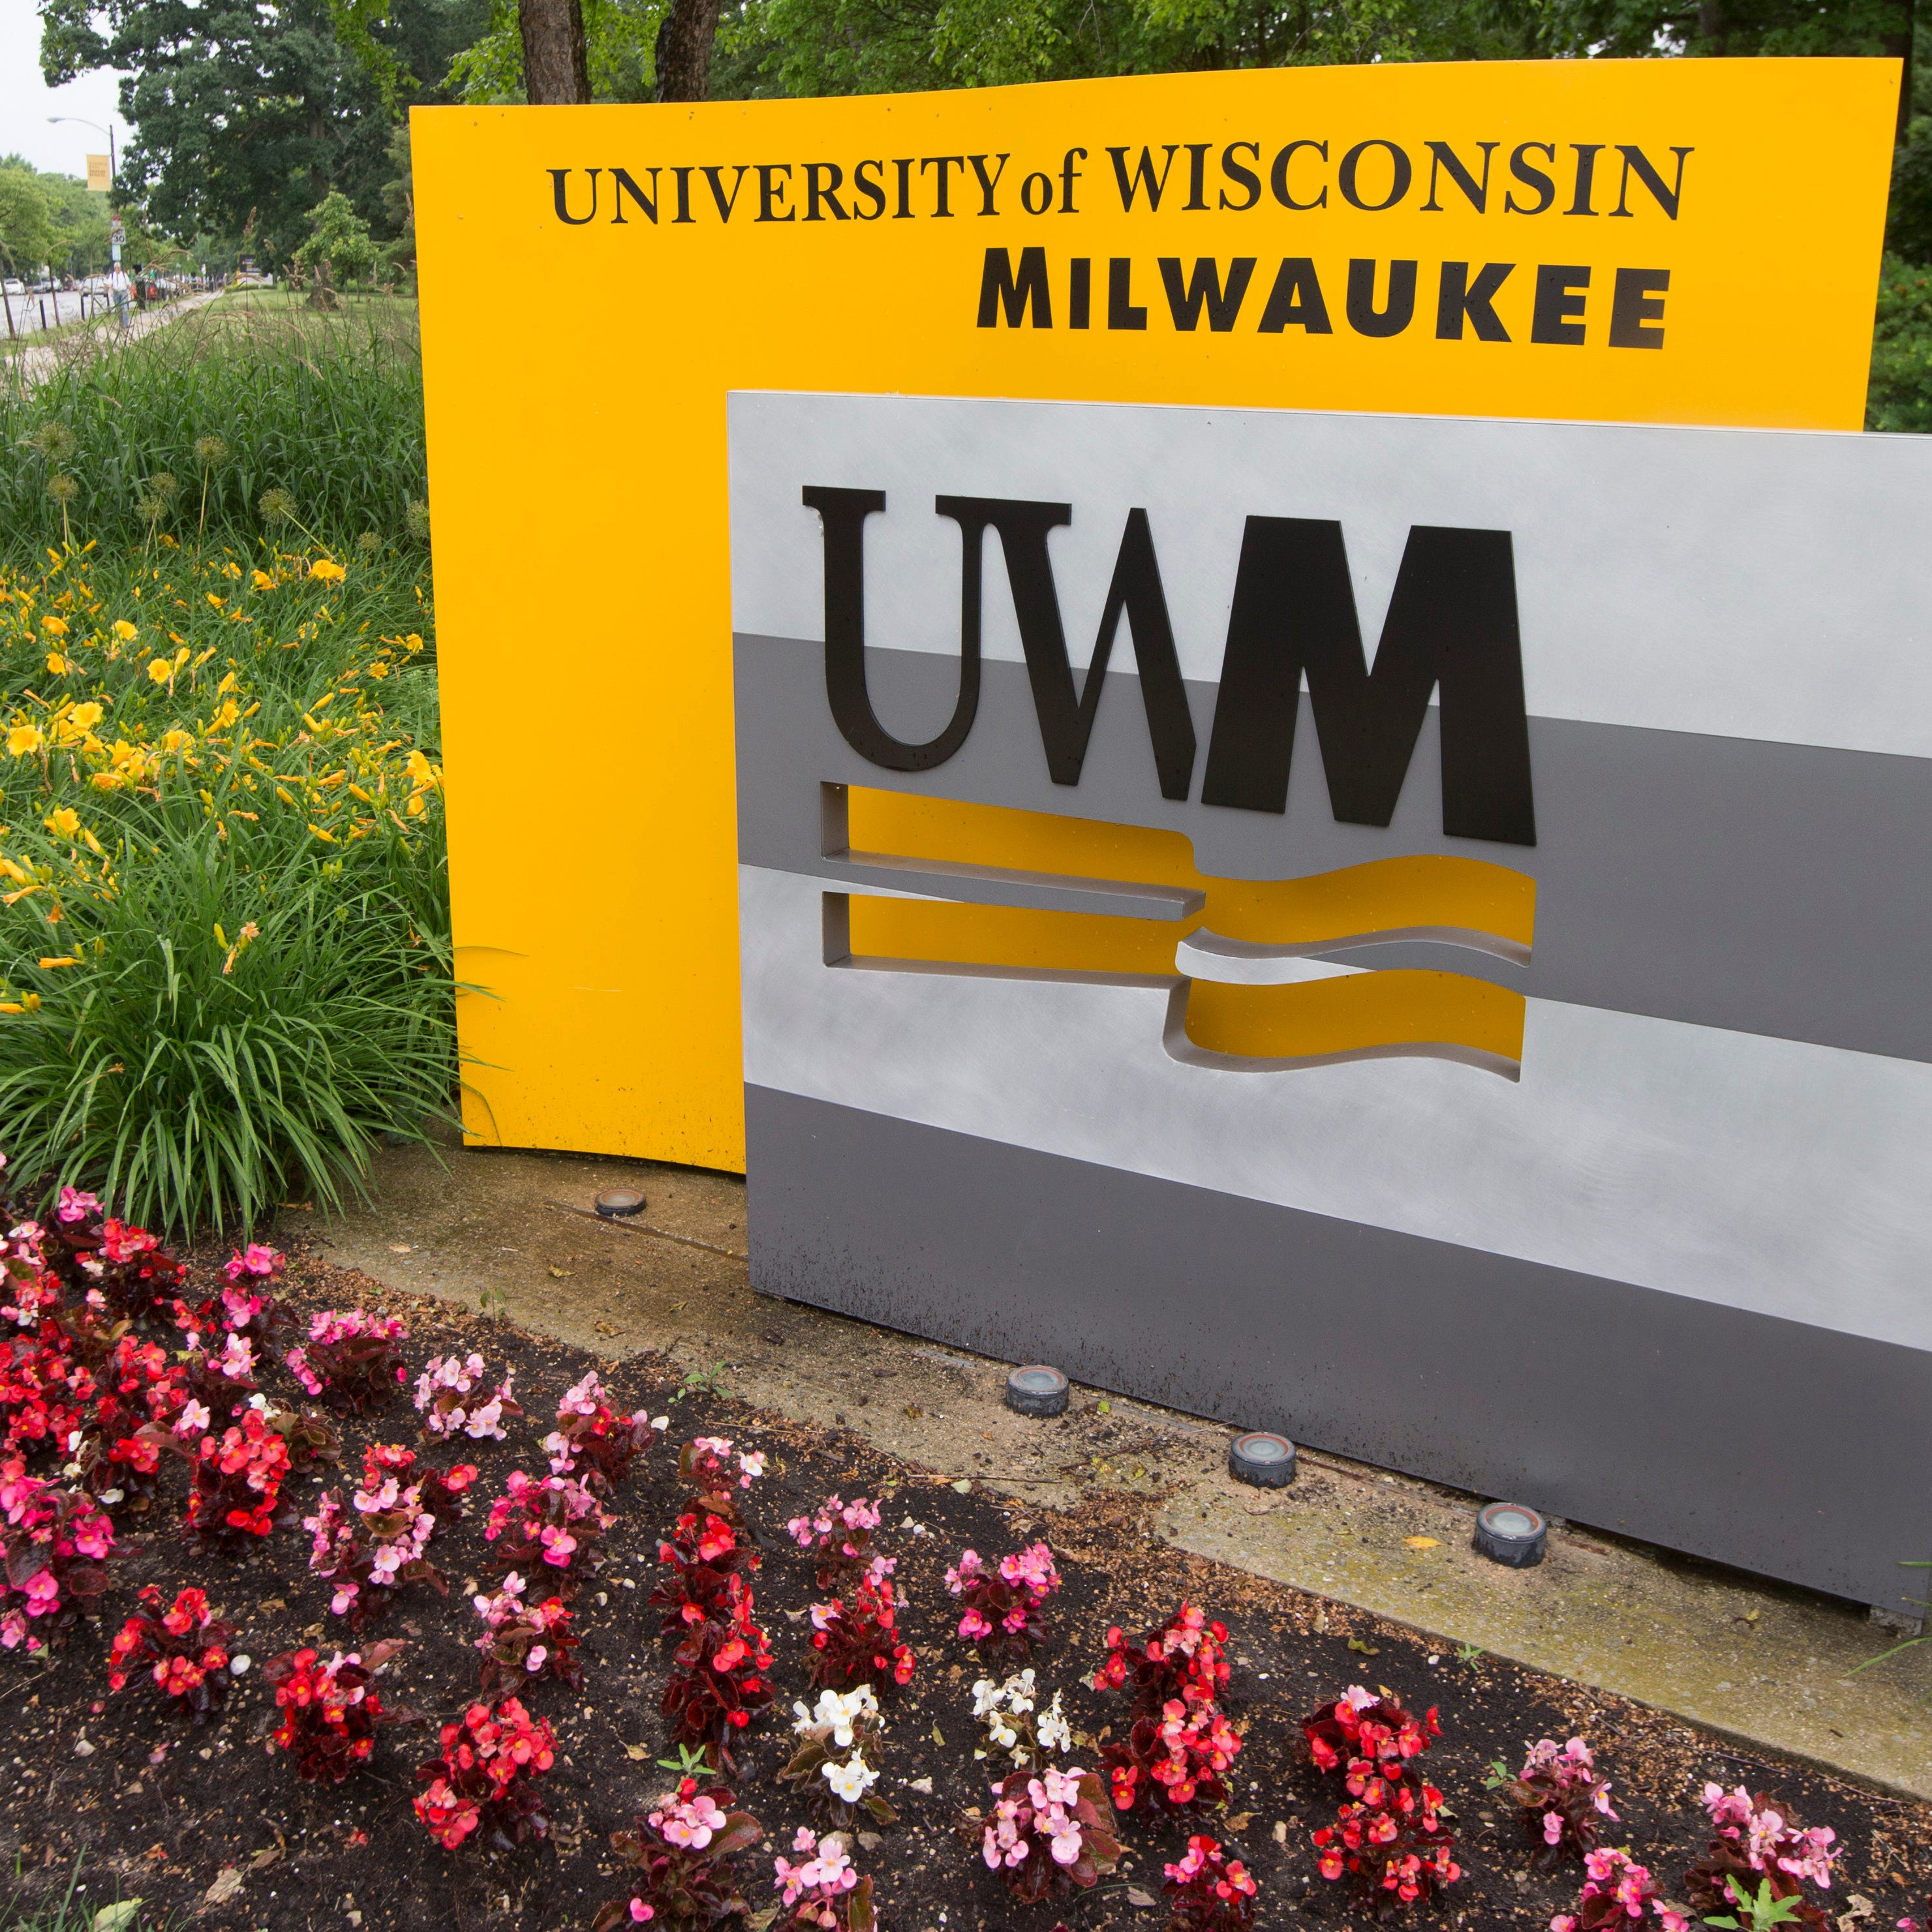 Texas astrophysicist sues UWM, says his reputation was smeared in sex assault allegation